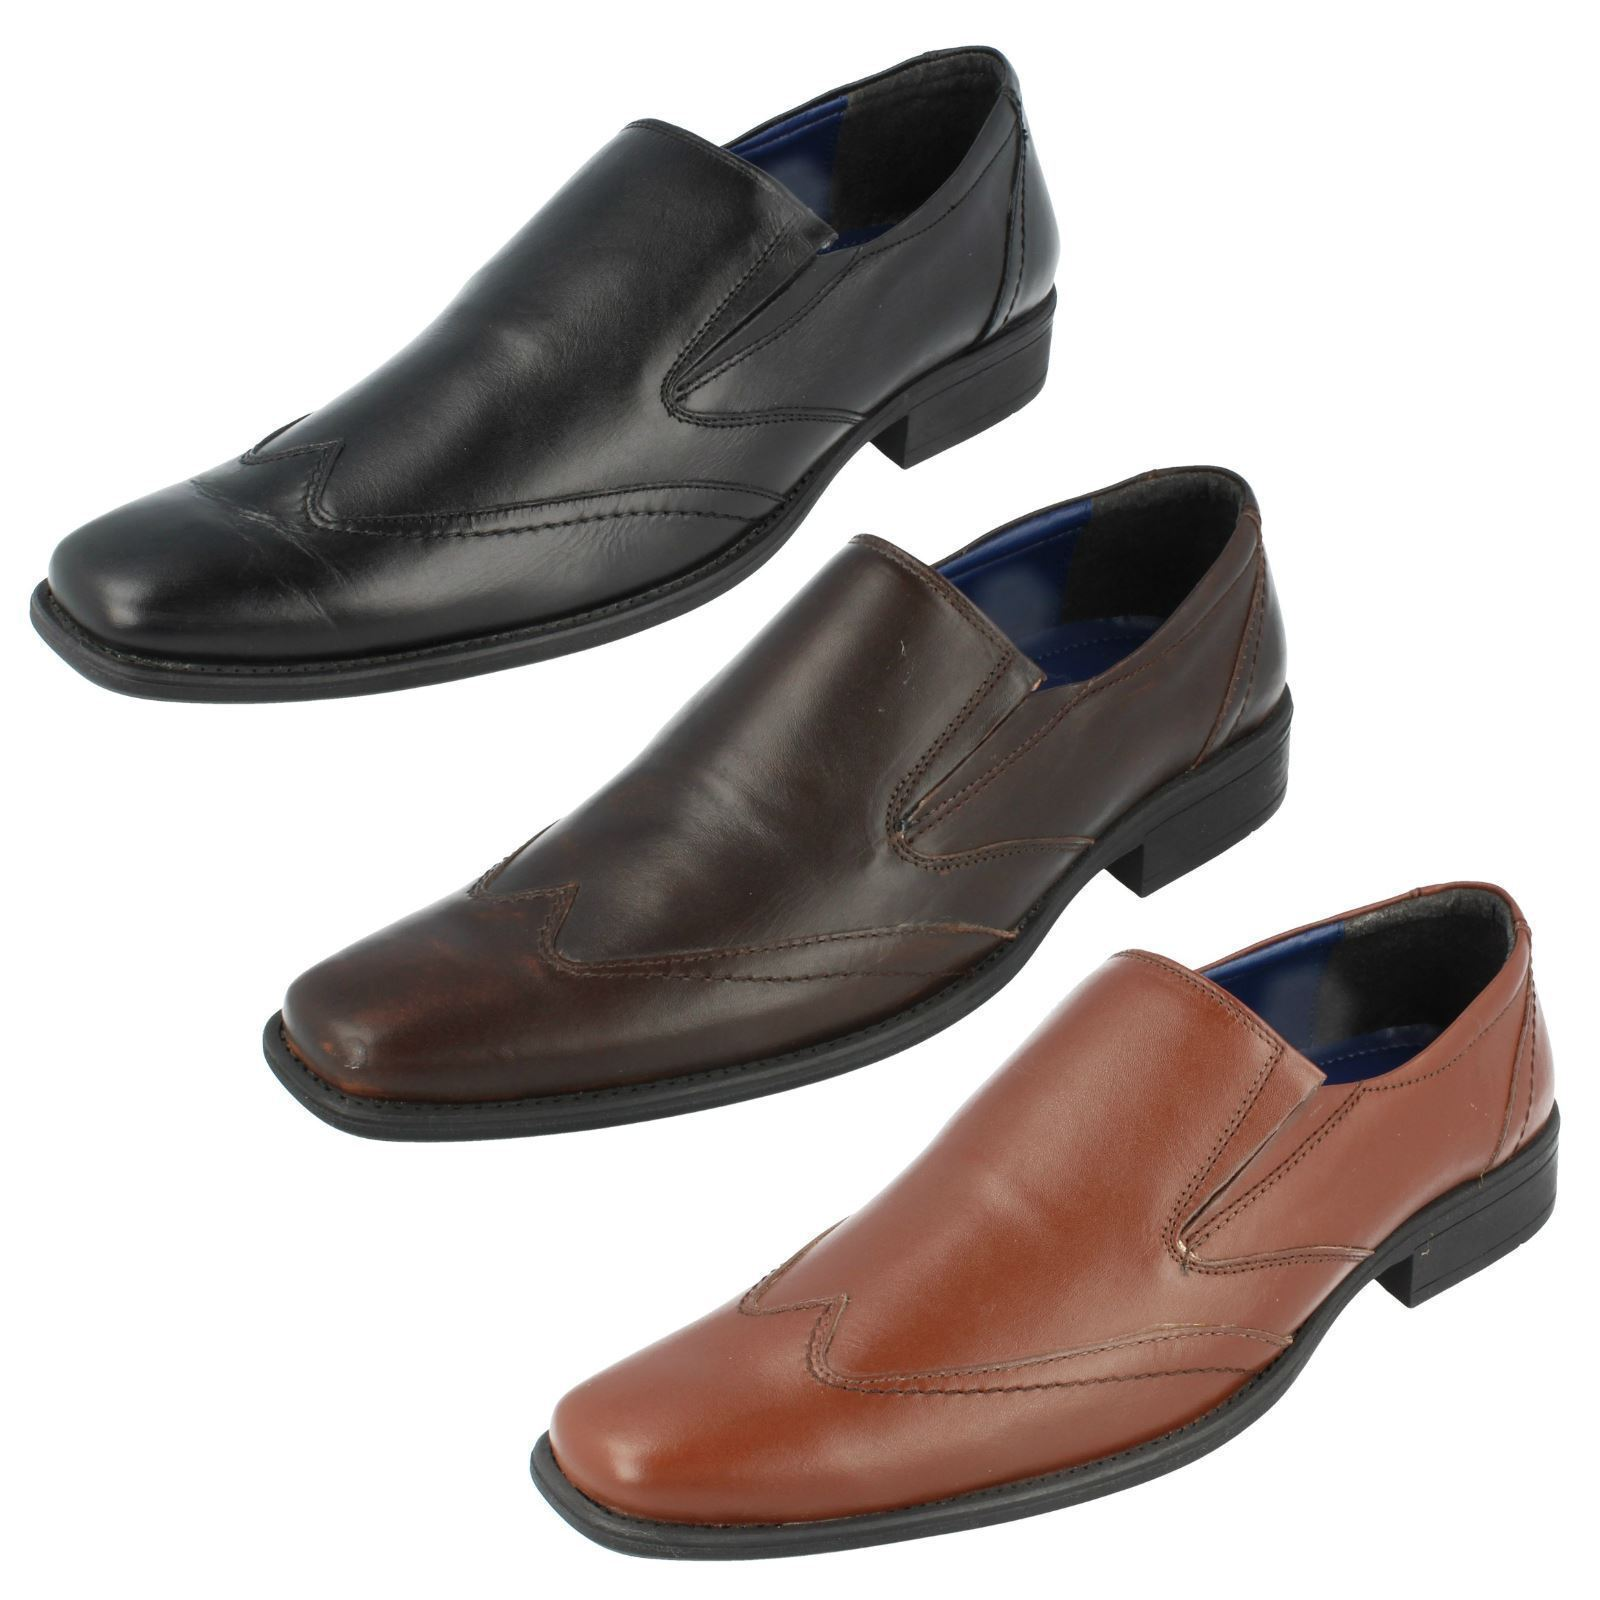 Mens Bruno Brown Donnari NN901 Black Or Brown Bruno Or Tan Slip On Smart Shoes (R40B) (Kett) 4c5b72